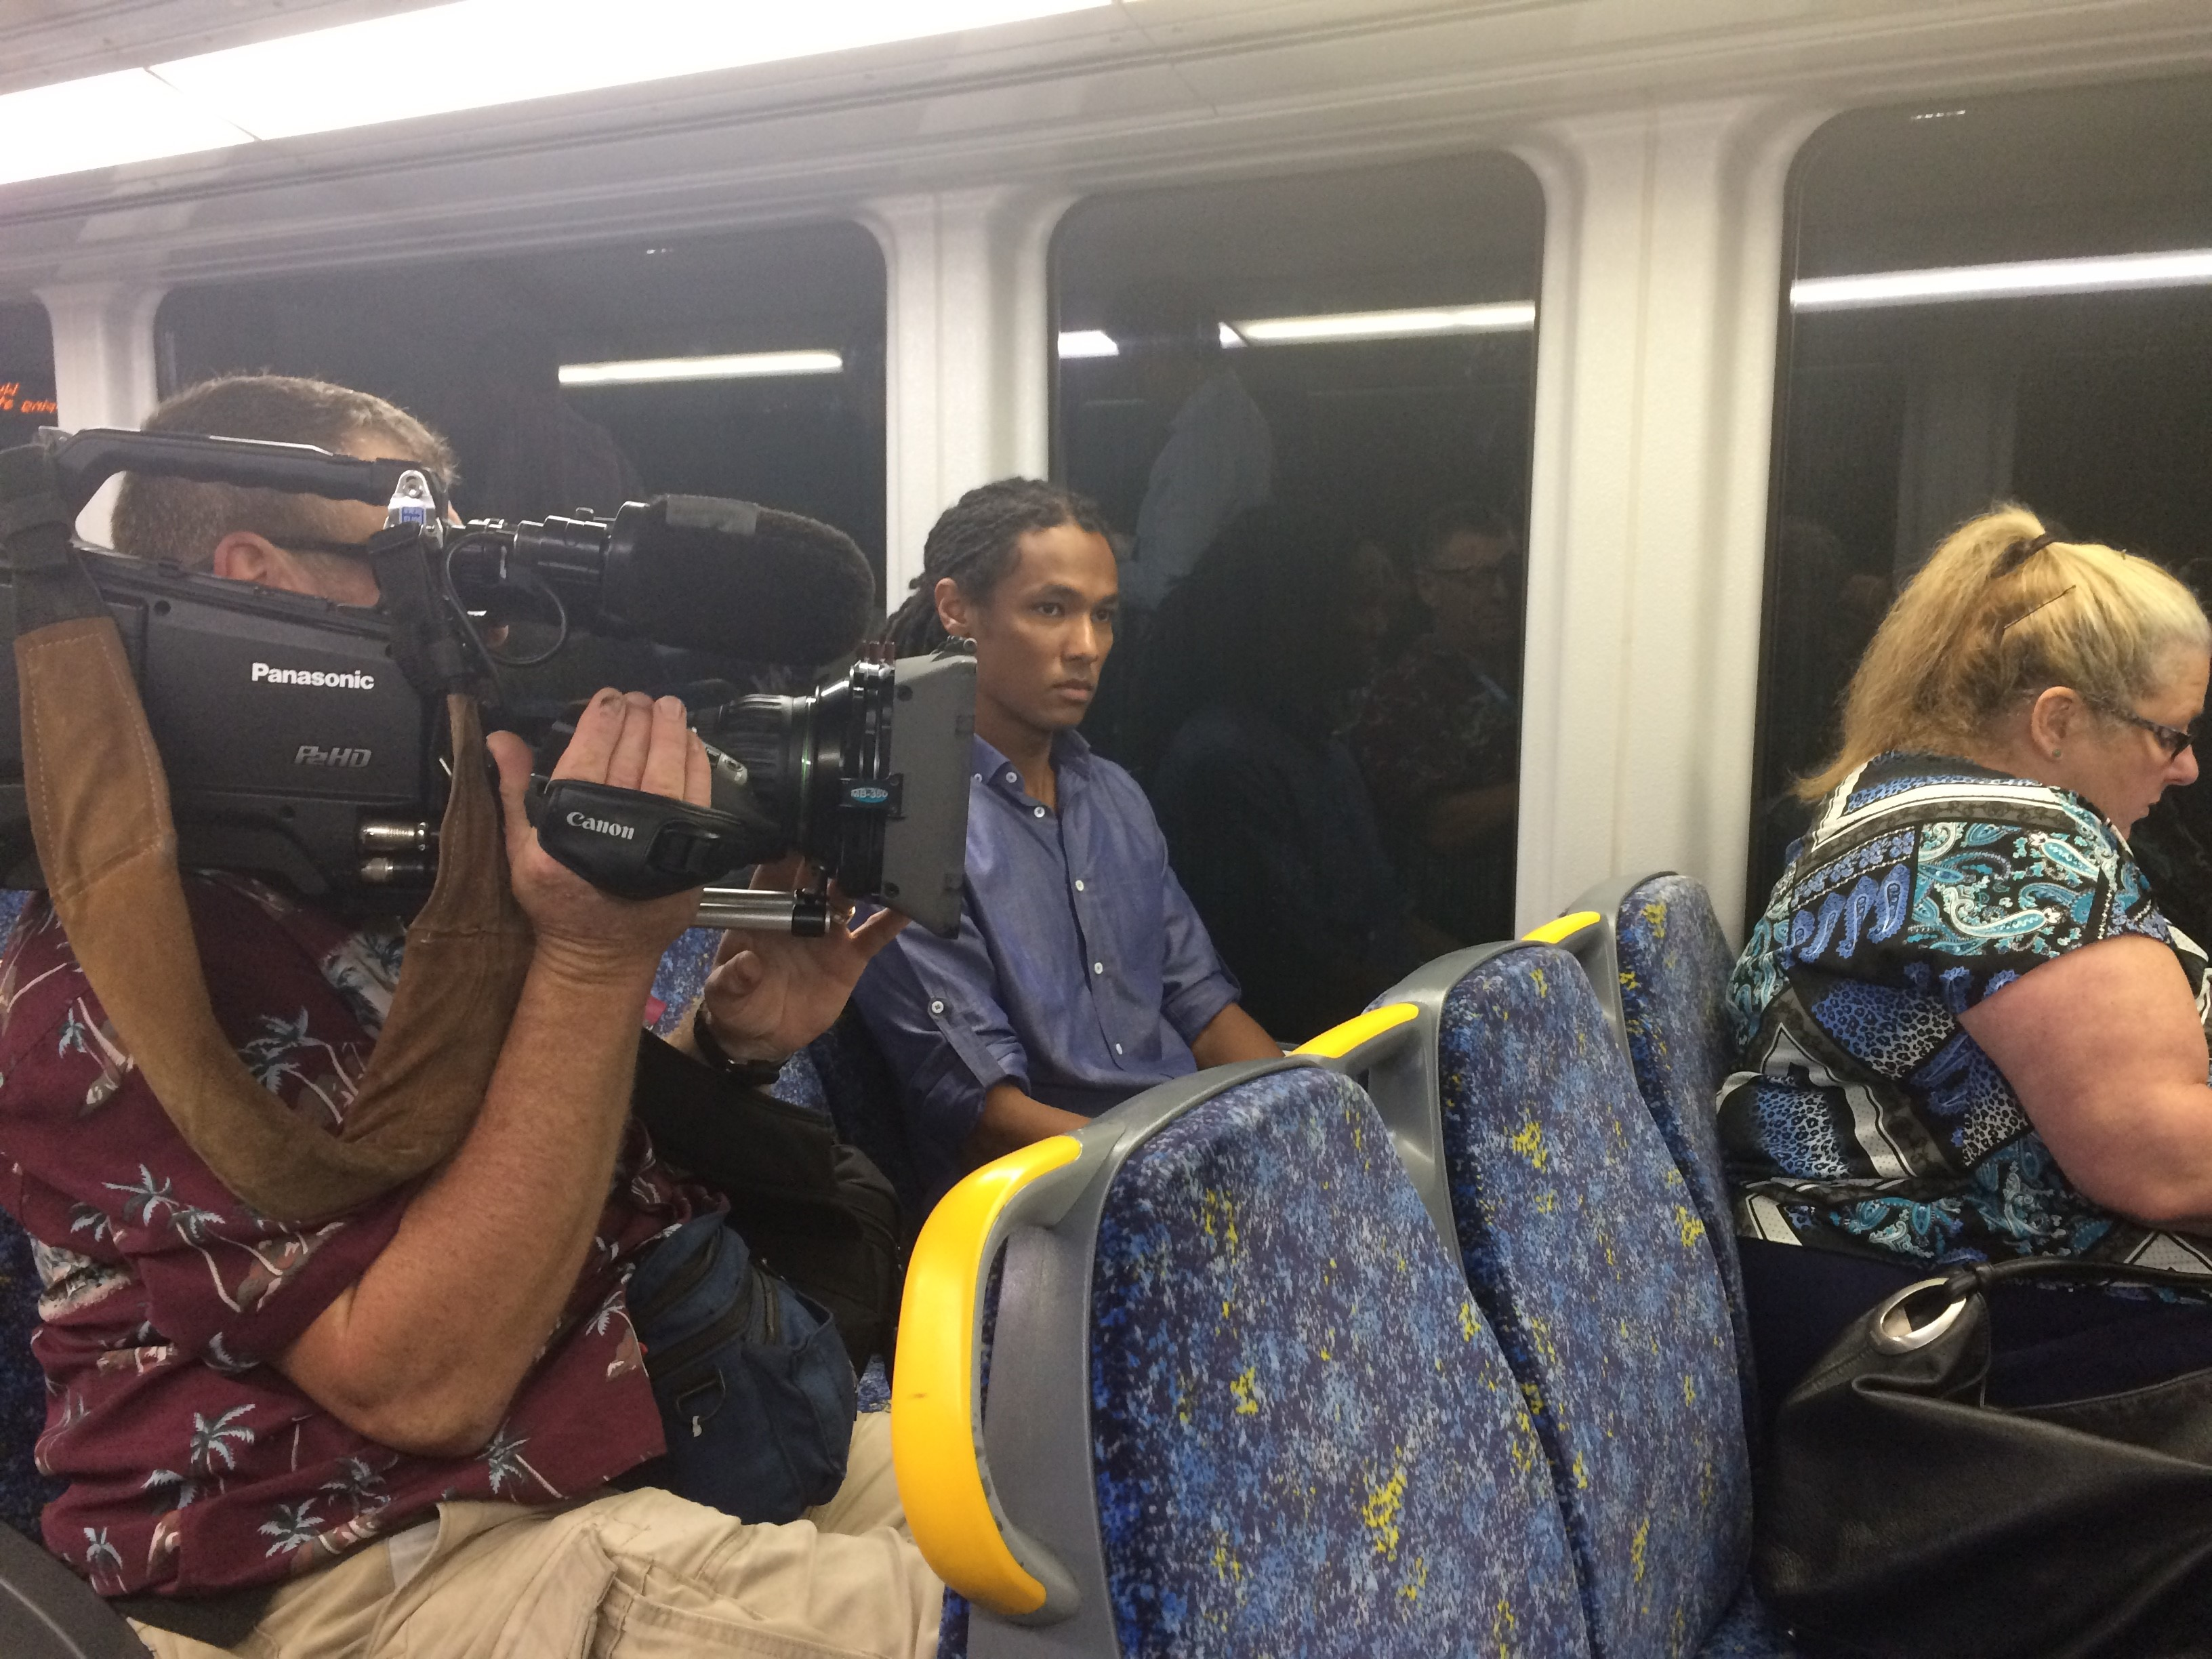 John Eligon reports from a bus in Australia.